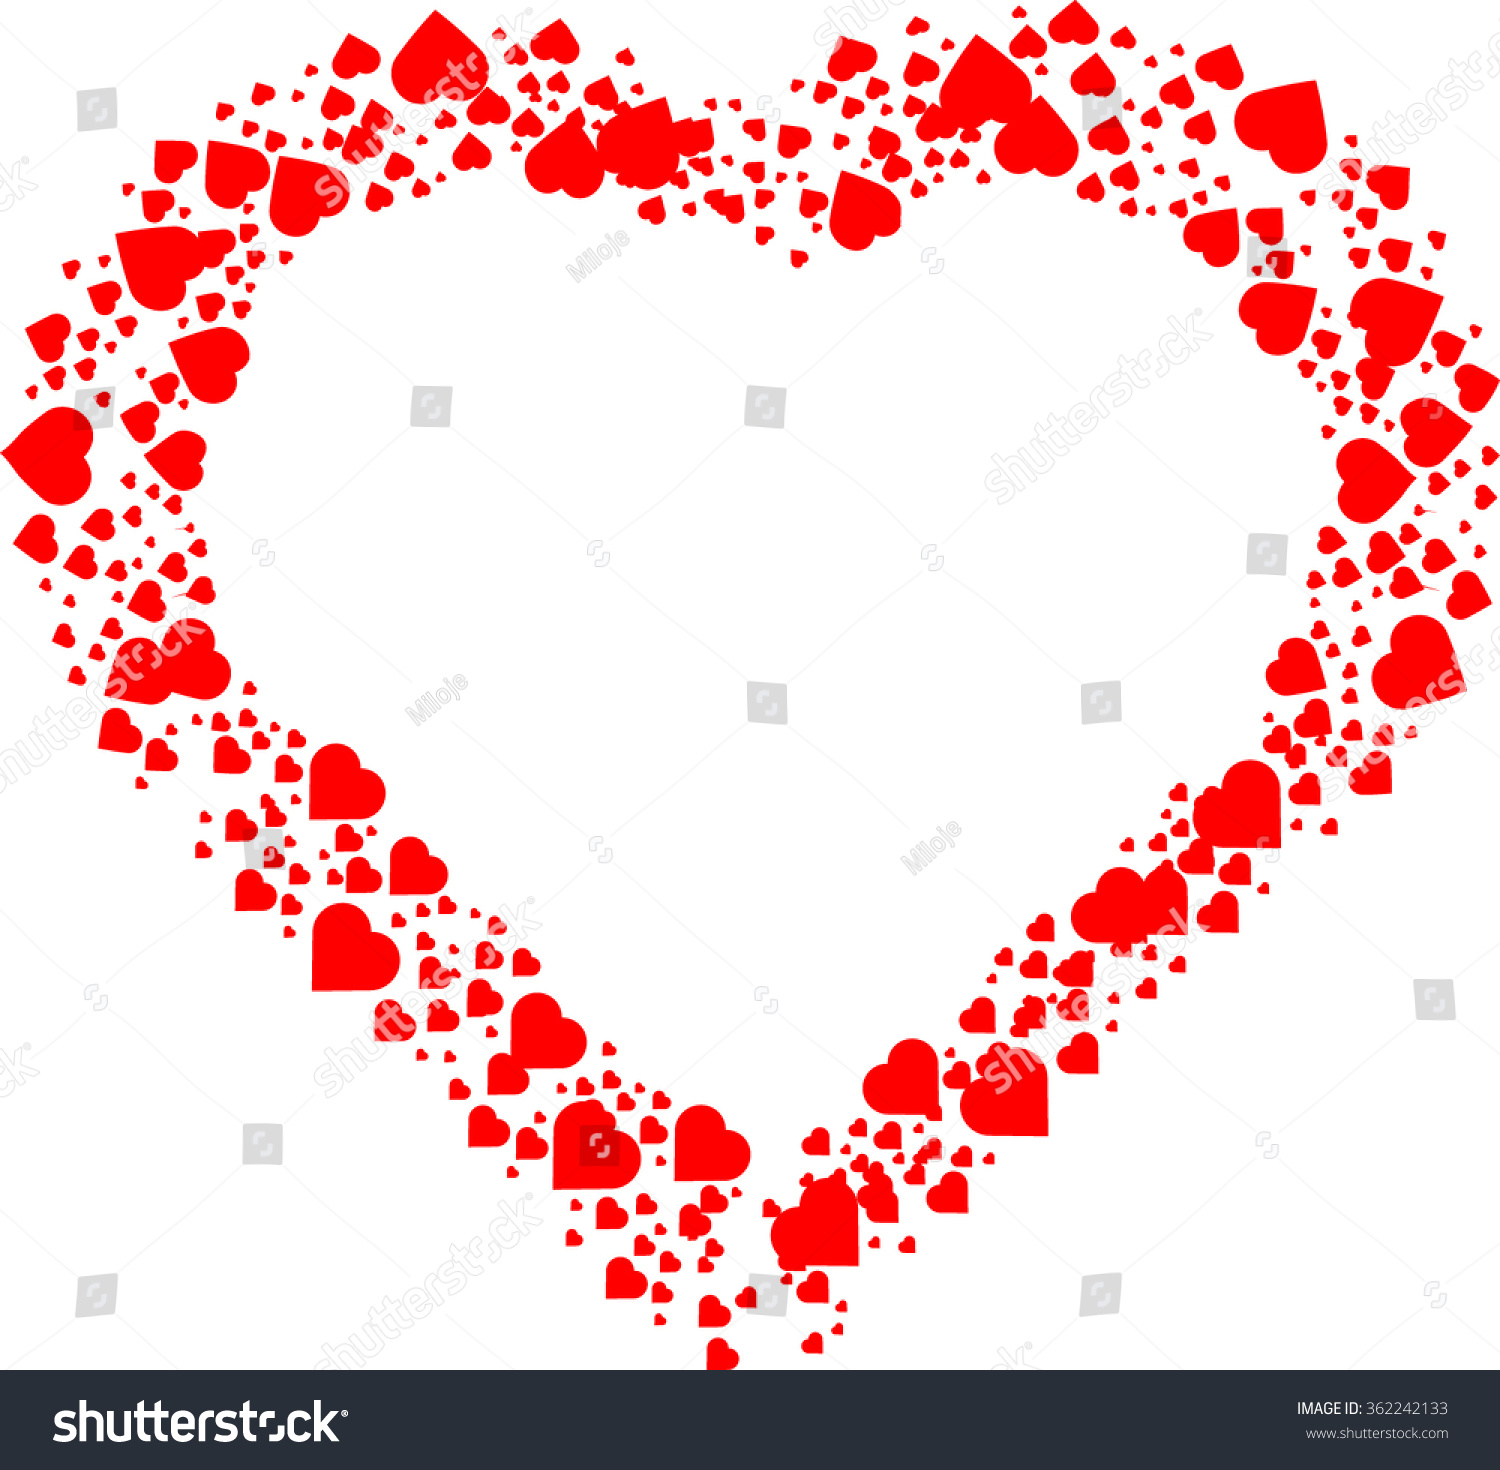 Similar Images, Stock Photos & Vectors of Love Red Frame Valentines ...